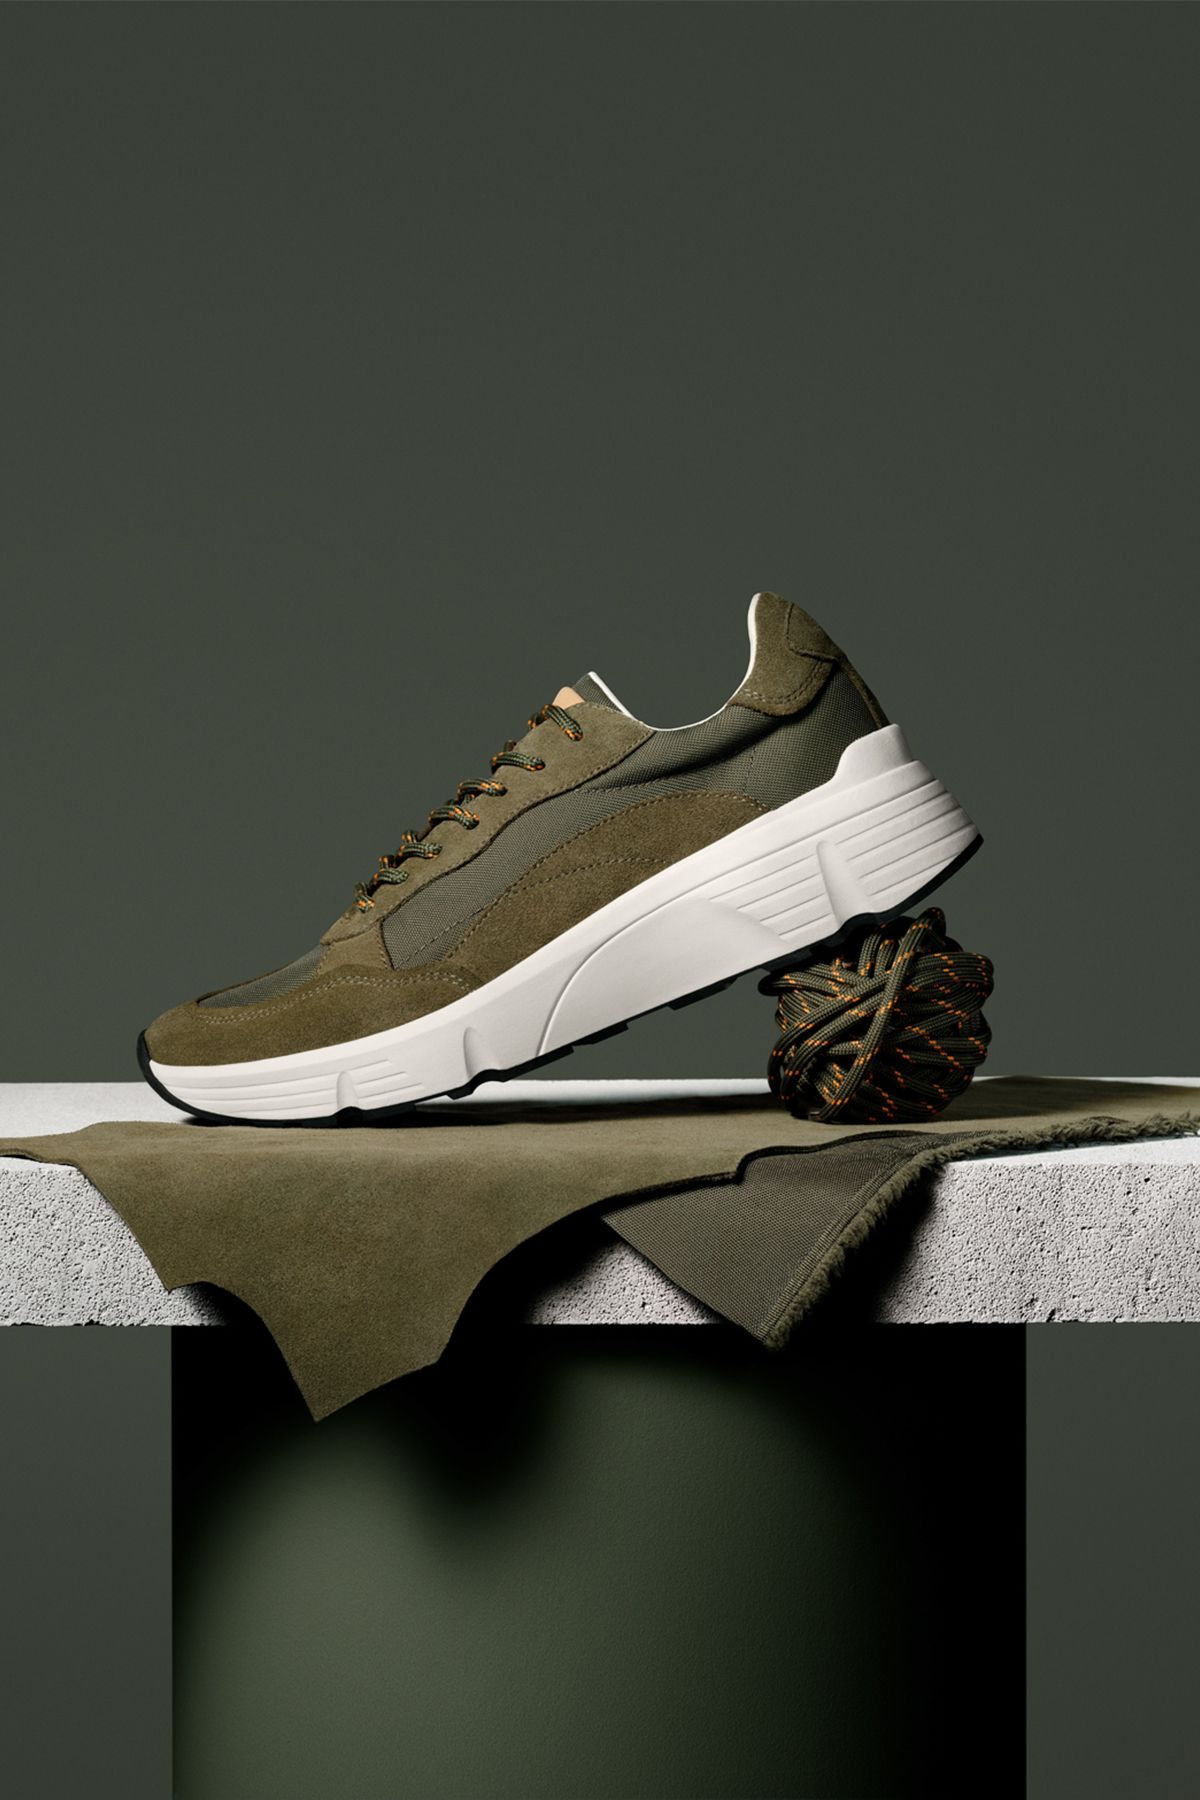 Sleek And Stylish Swedish Men S Shoes From Vagabond In 2020 Scandinavian Shoes Shoe Brands Minimalist Sneakers